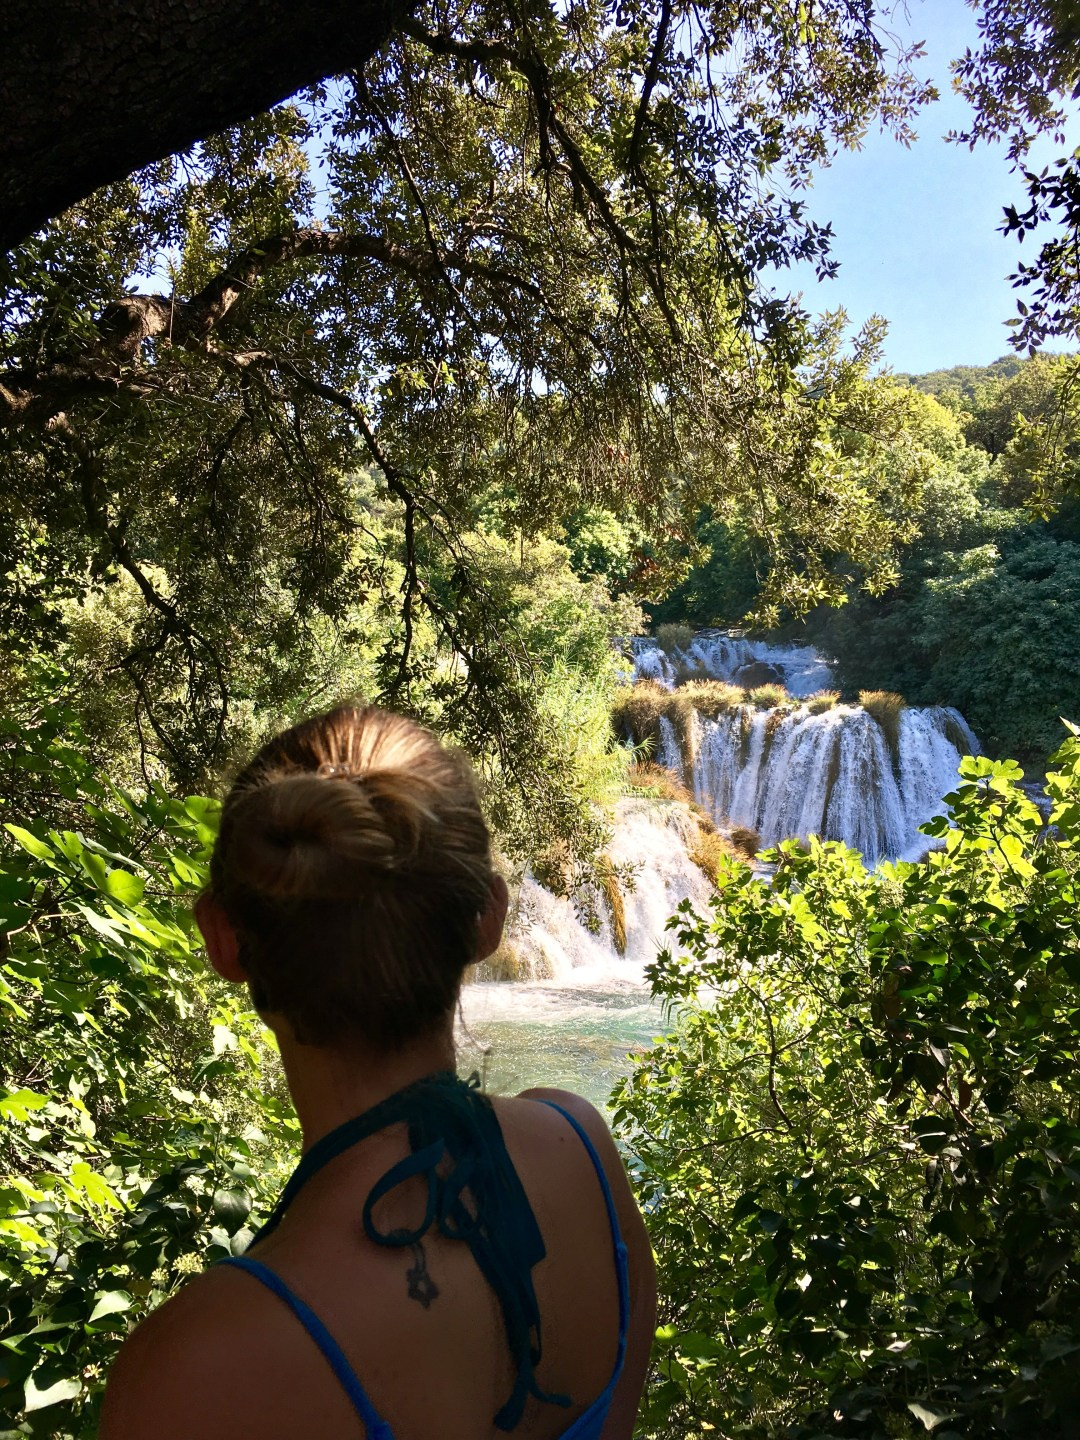 Girl looks out over the waterfalls at Krka National Park in Croatia